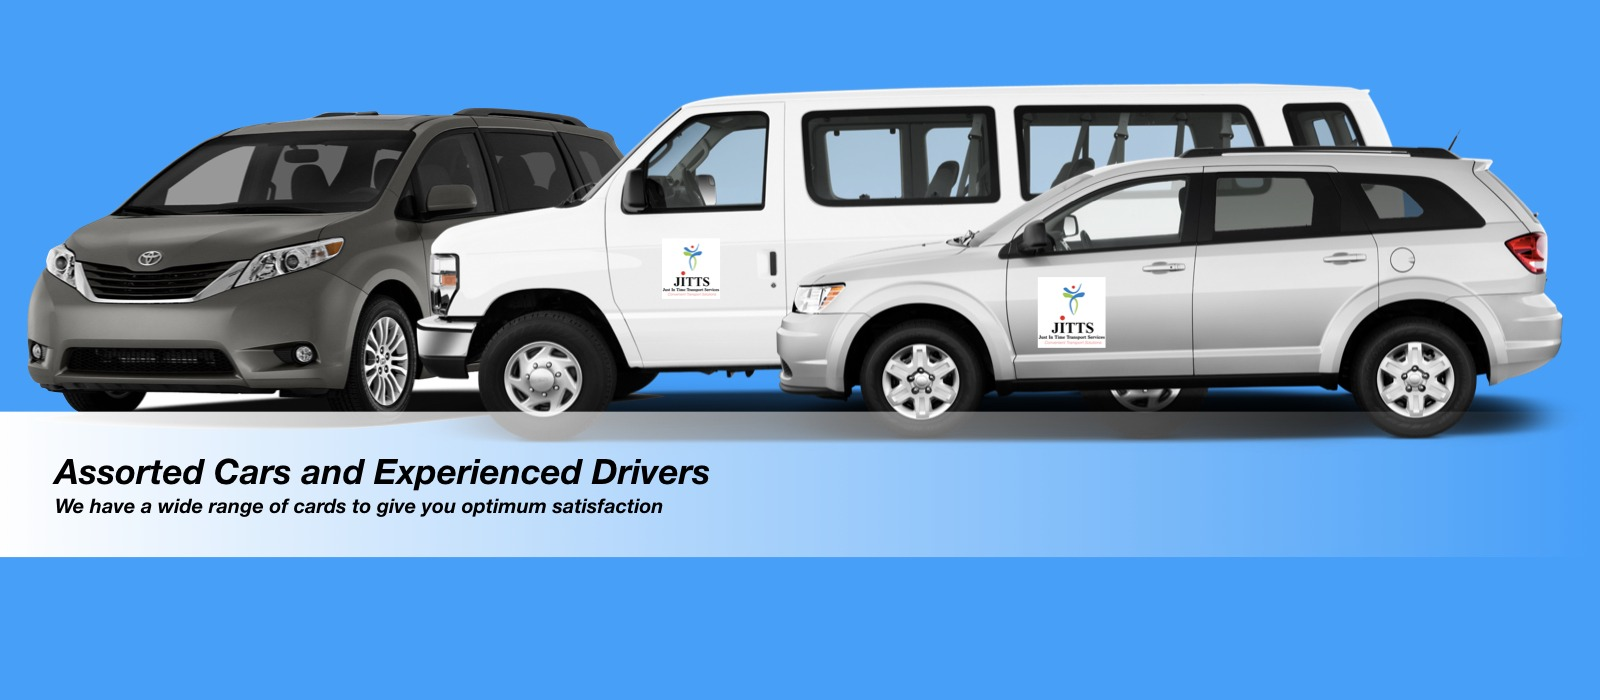 just in time transportation services